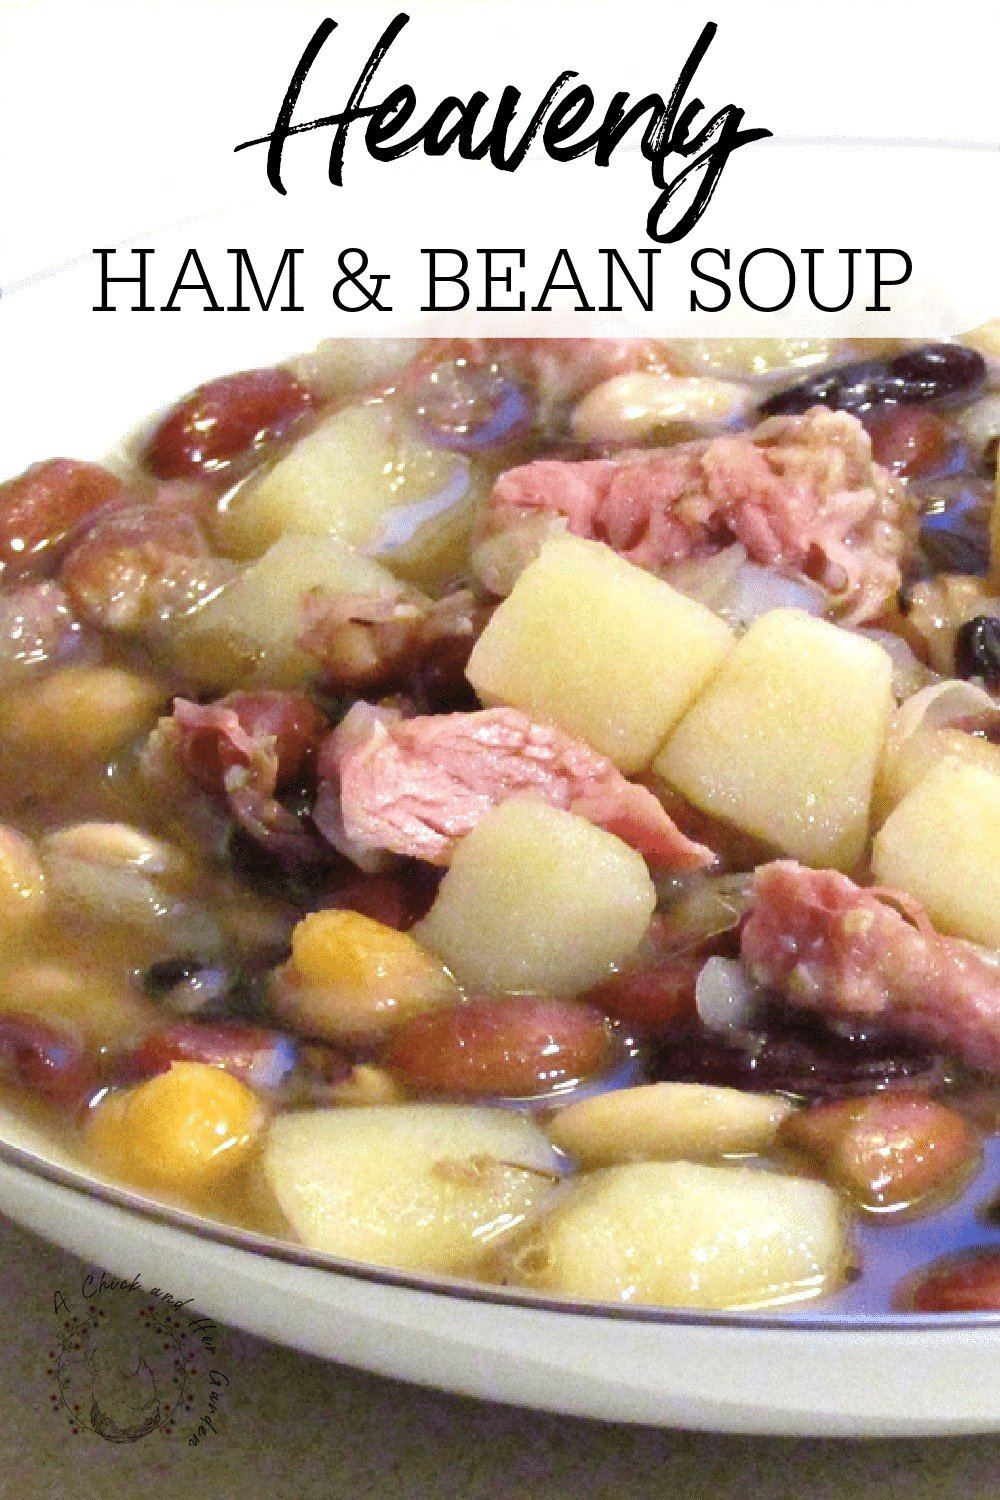 Sometimes I think more about the soup I can make after the holidays with a leftover ham bone than I think about the ham dinner itself!  This ham and bean soup recipe was so easy and perfect for a chilly day! #hamandbeansoup #souprecipes #heartysoups #holidayleftovers #wintersoups #souprecipes #achickandhergarden